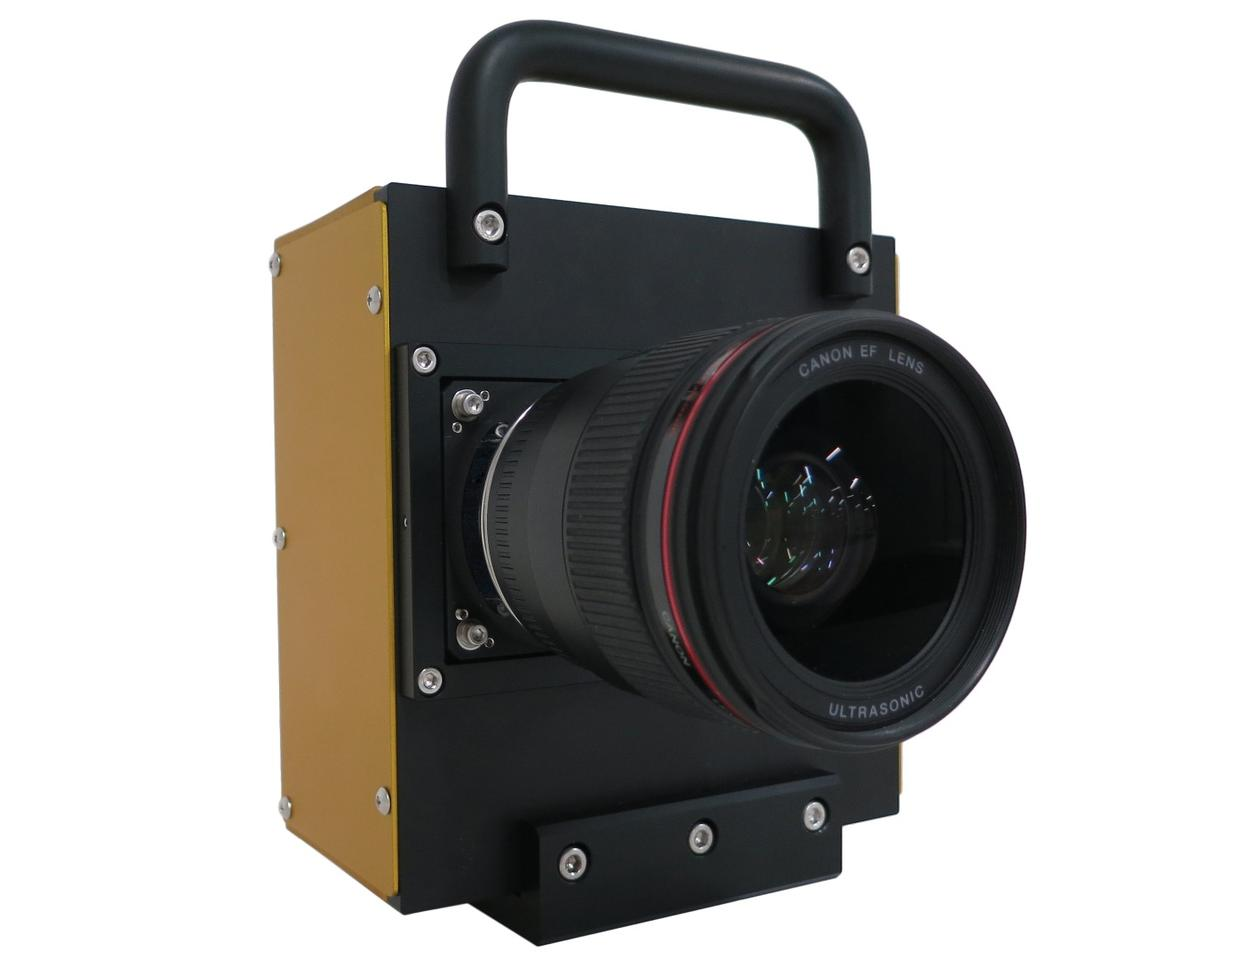 The 250-megapixel Canon sensor has been tested in a camera prototype